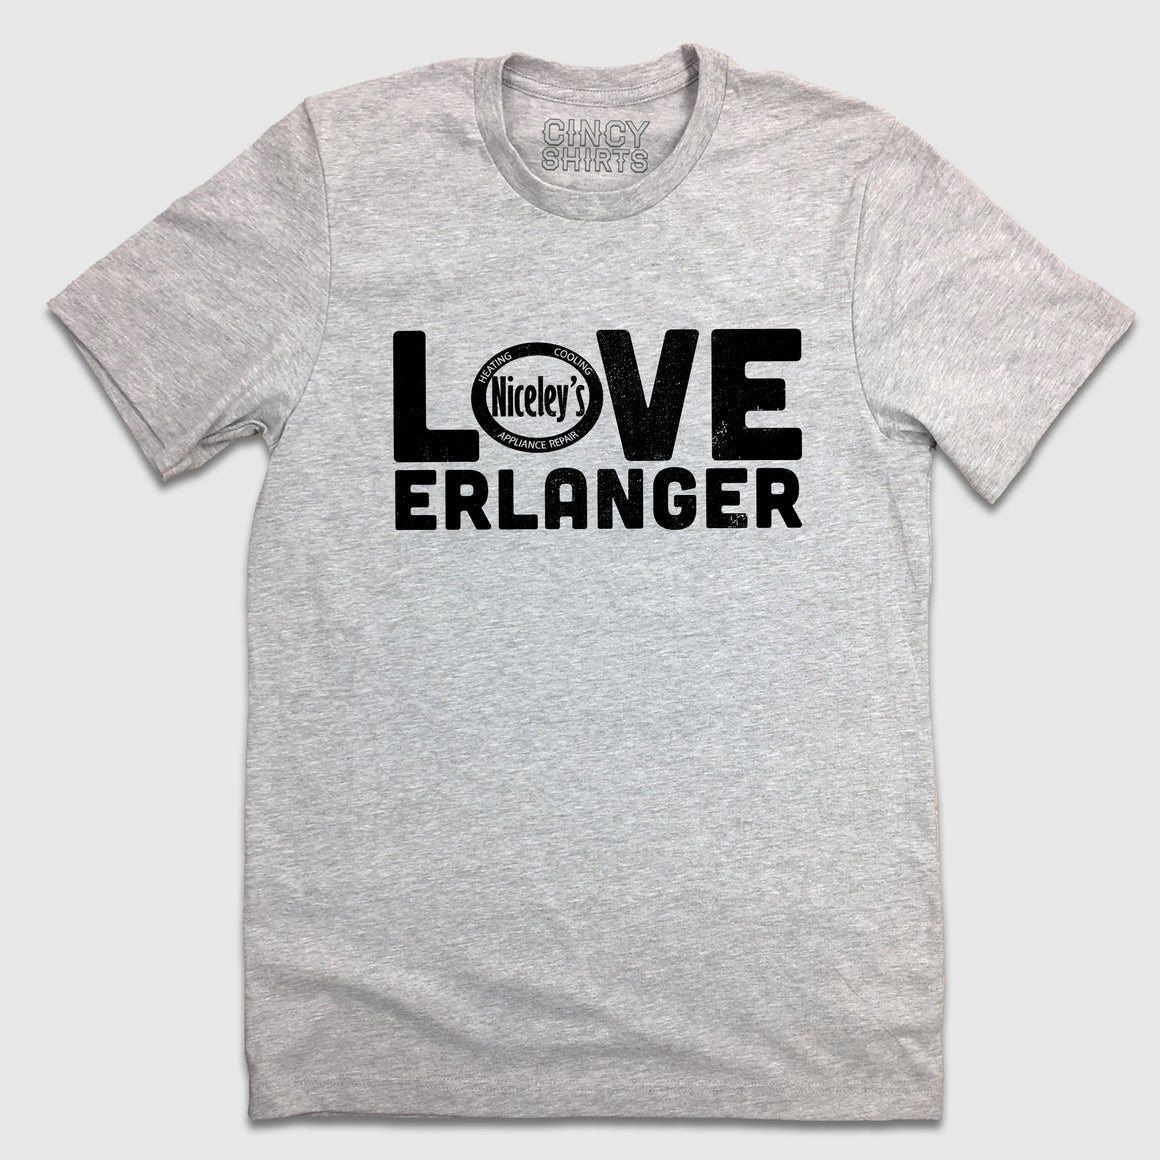 Love Erlanger - Niceley's Heating & Cooling - Cincy Shirts